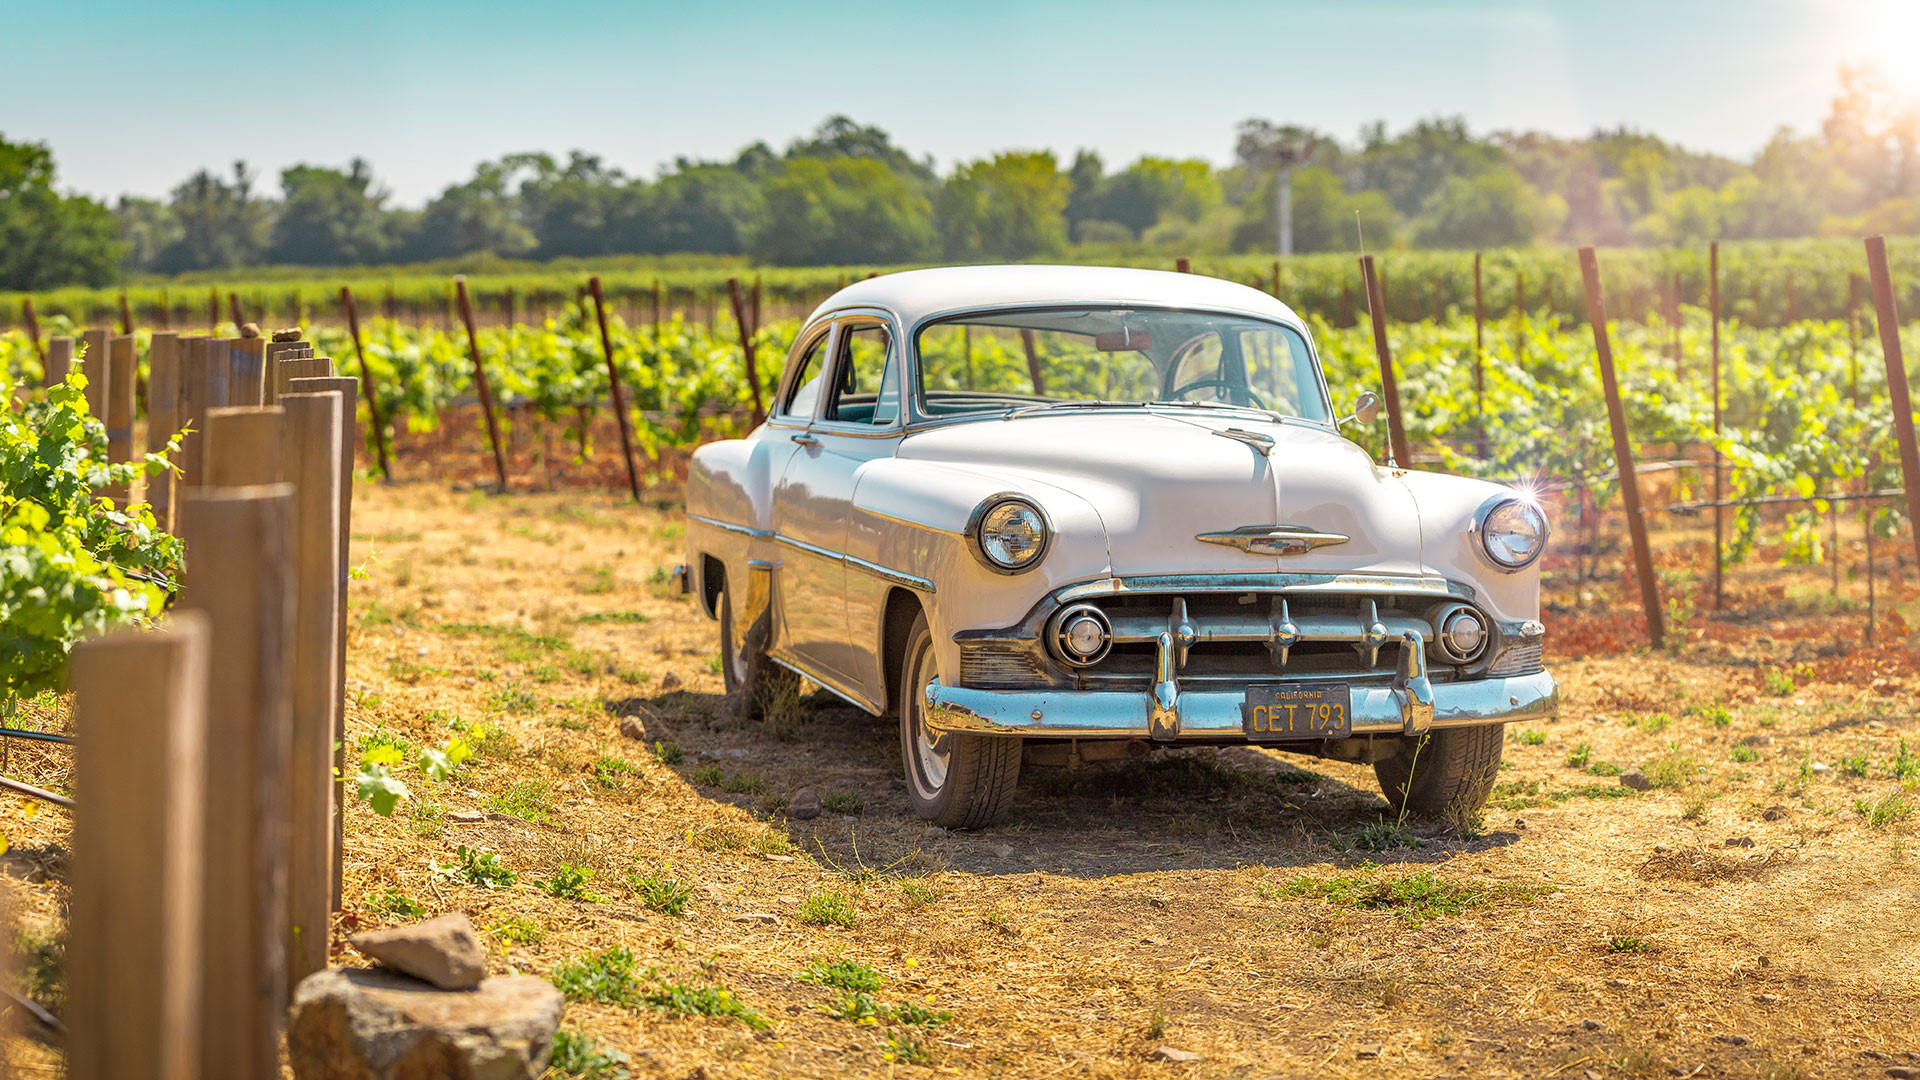 Car colored shot and Vineyard